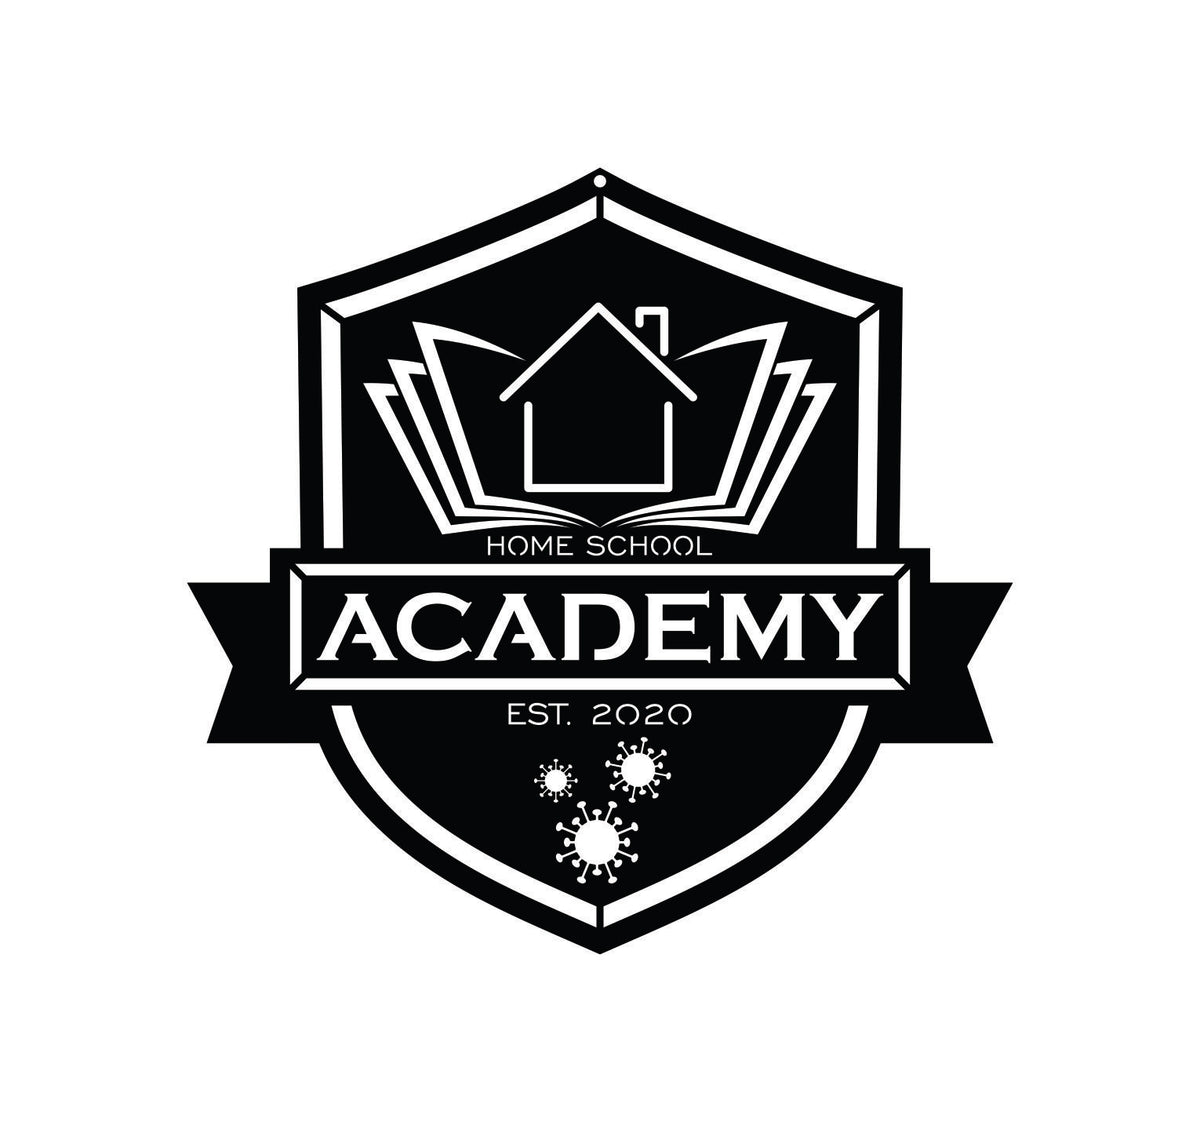 Home School Academy Sign